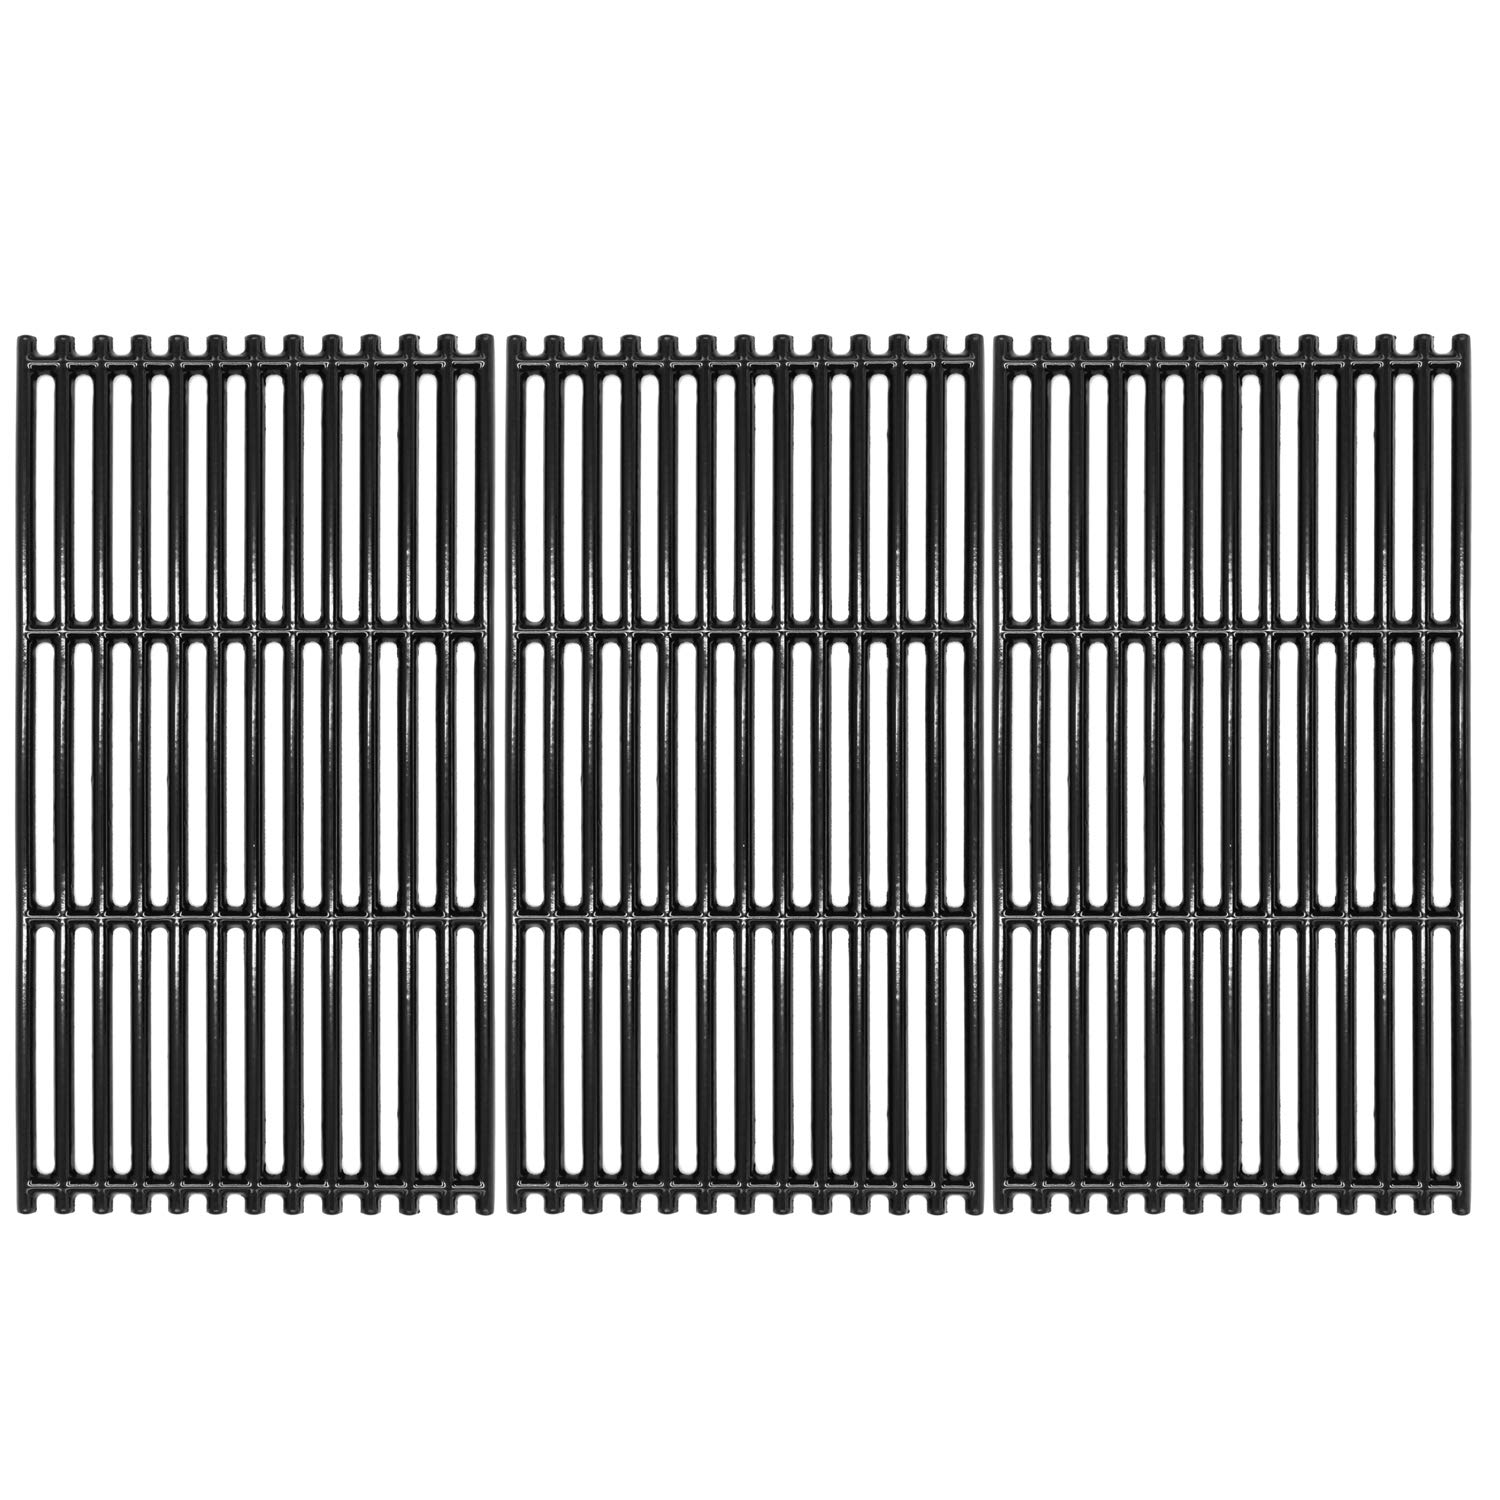 """VICOOL 17"""" Grill Grates Porcelain Coated Cast Iron Cooking Grid(Upgrade) for Charbroil Commercial TRU-Infrared 463242716, 466242715, Walmart #555179228, G533-0009-W1, Set of 3, hyG937C"""